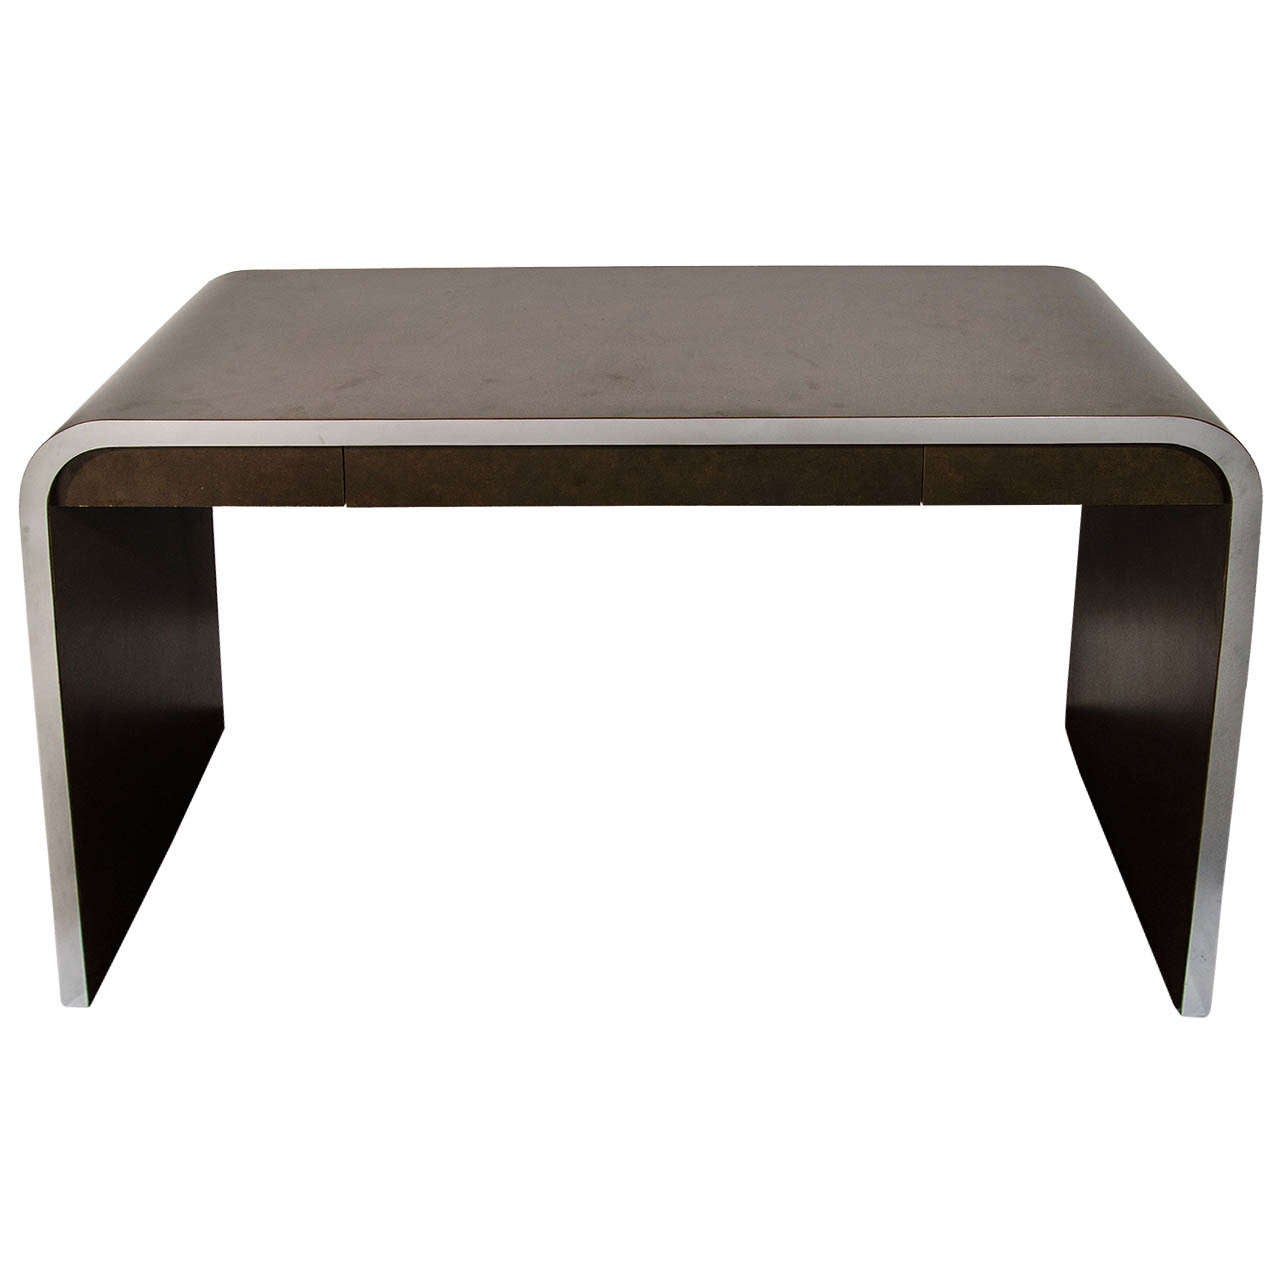 console table extensible elegant free table console. Black Bedroom Furniture Sets. Home Design Ideas